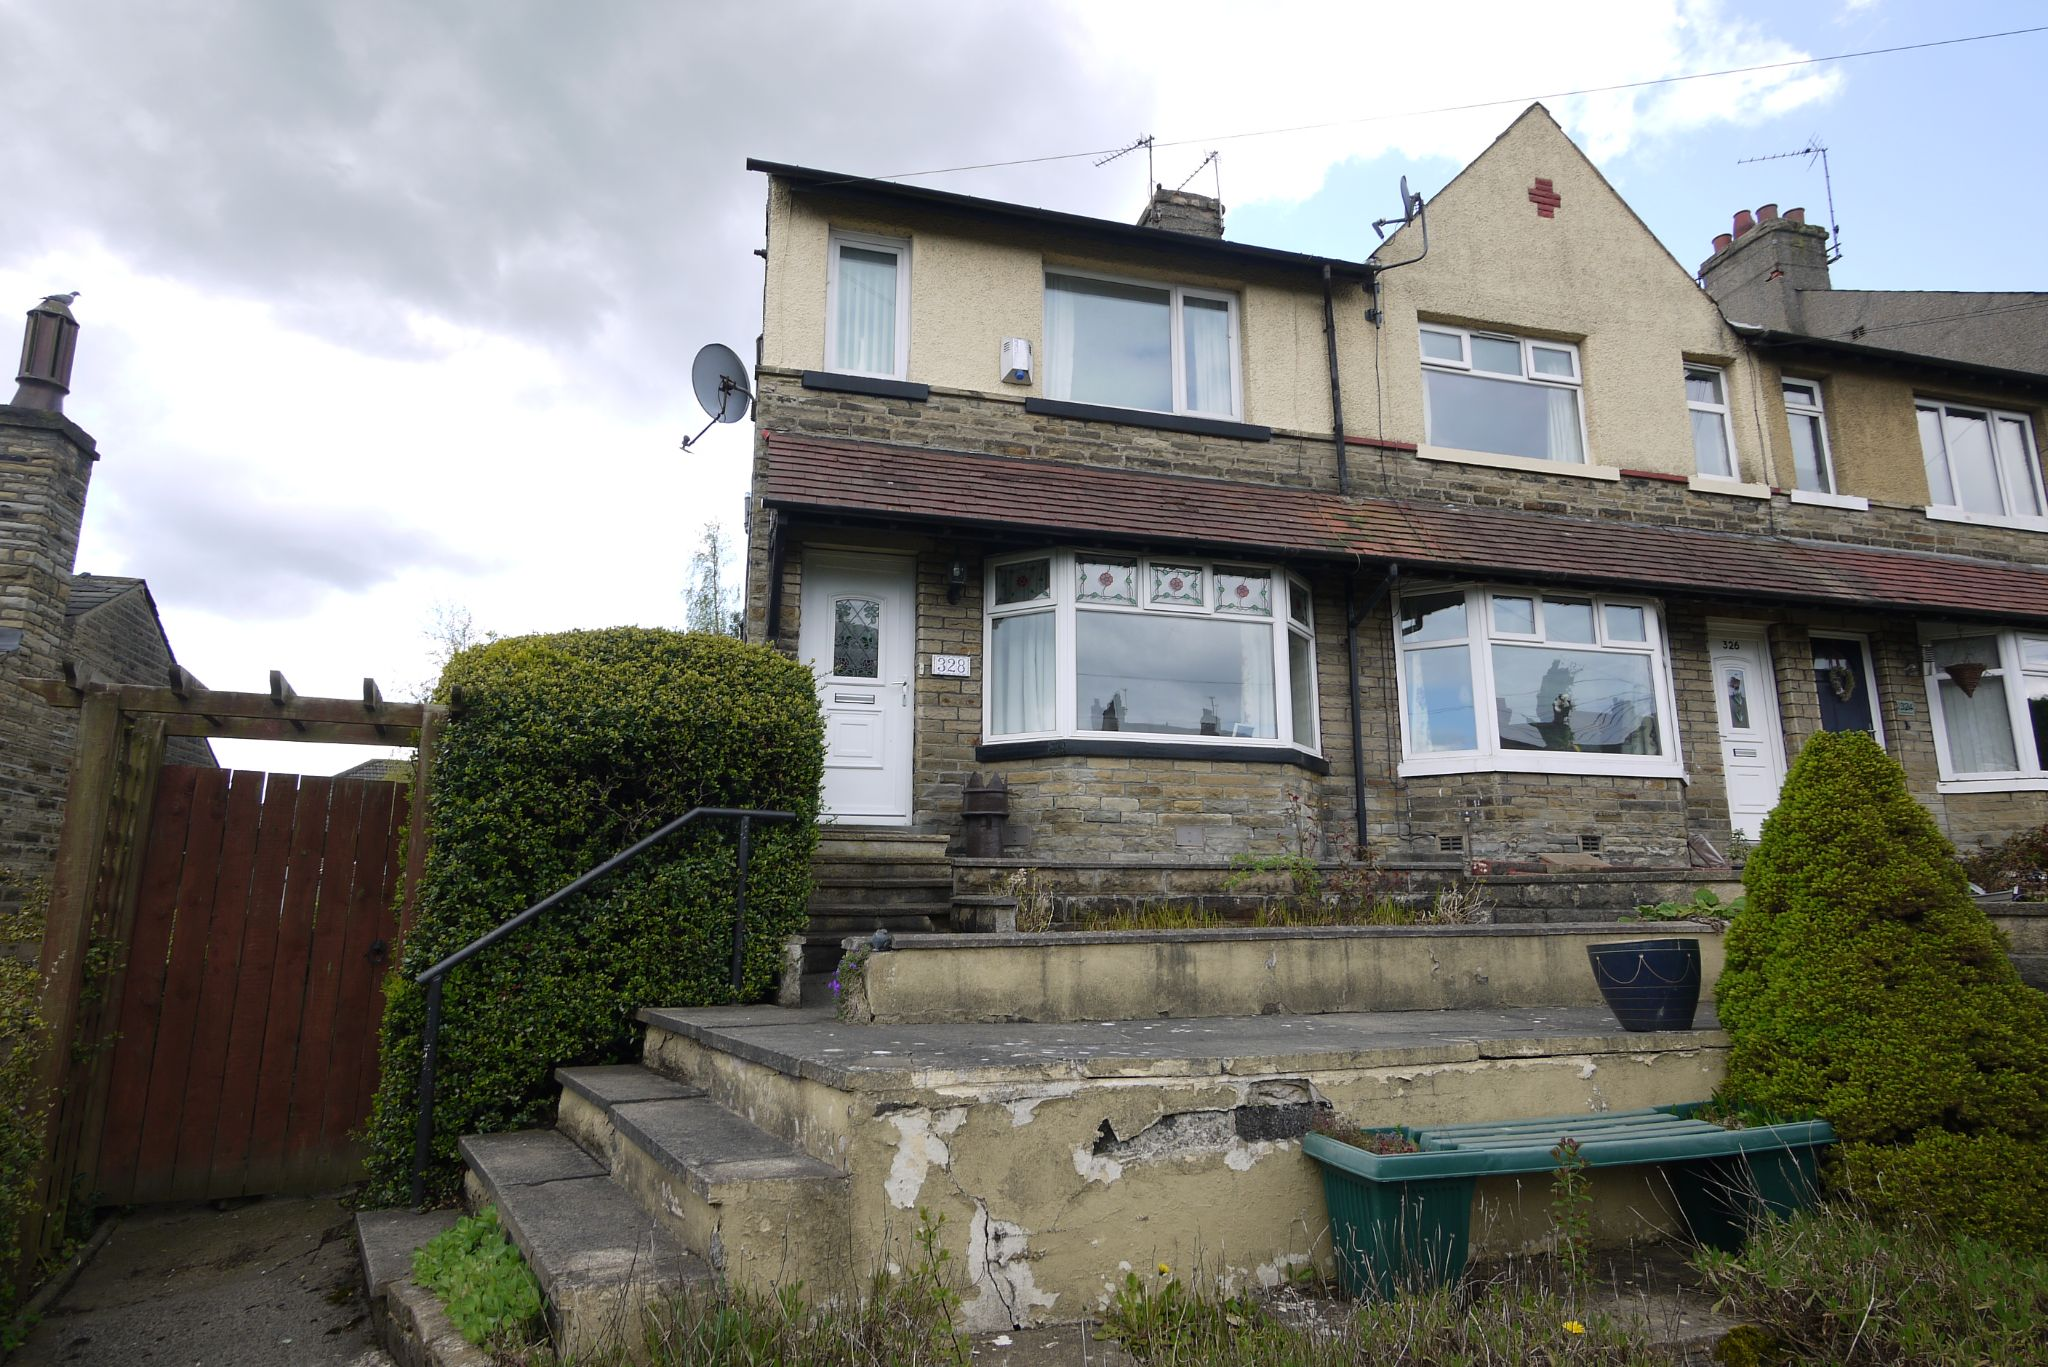 3 bedroom end terraced house For Sale in Brighouse - Photograph 1.